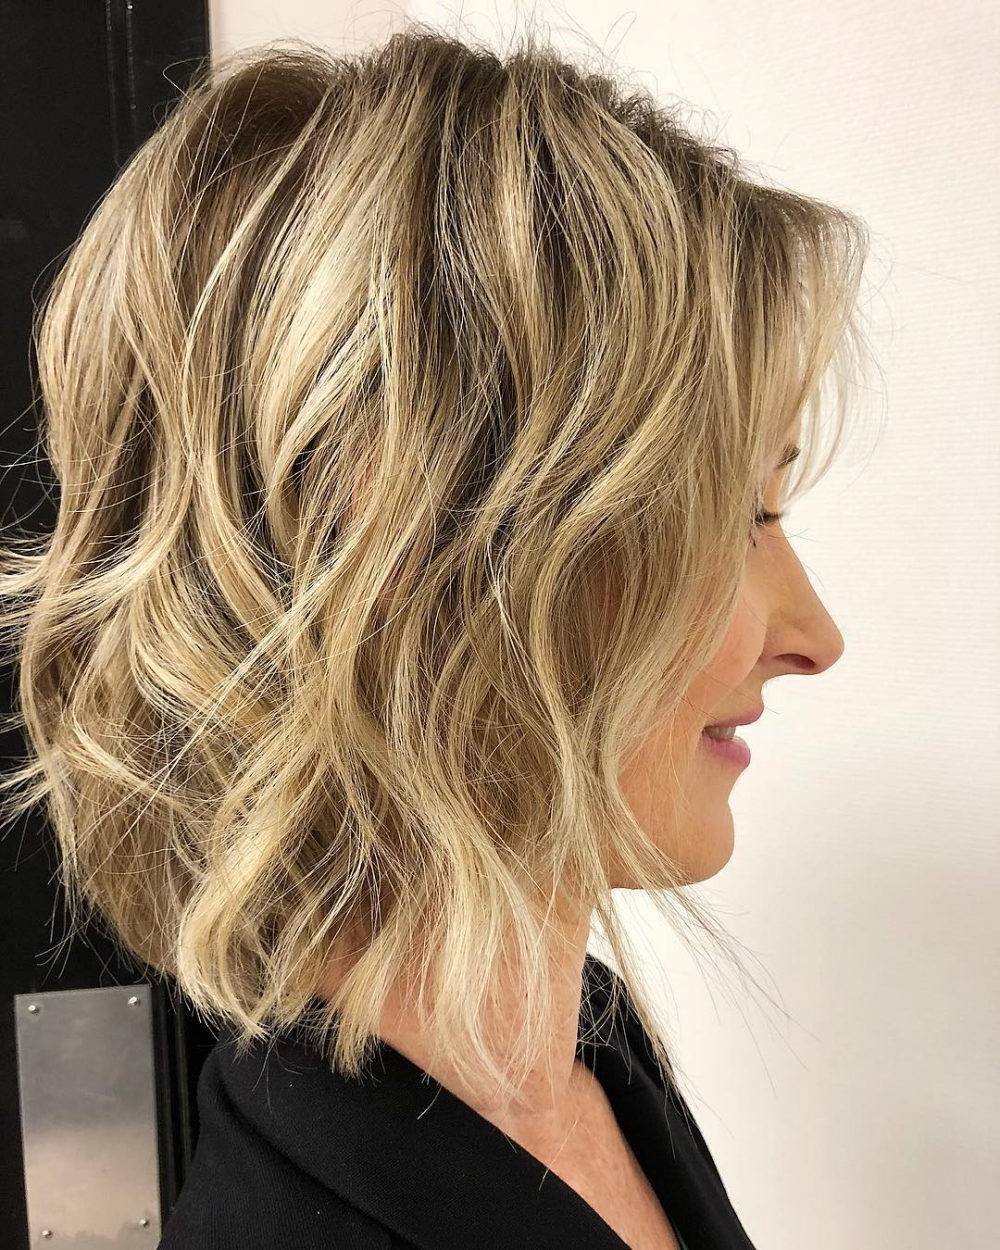 43 Perfect Short Hairstyles For Fine Hair In 2018 Throughout Cute Short Haircuts For Thin Straight Hair (View 10 of 25)